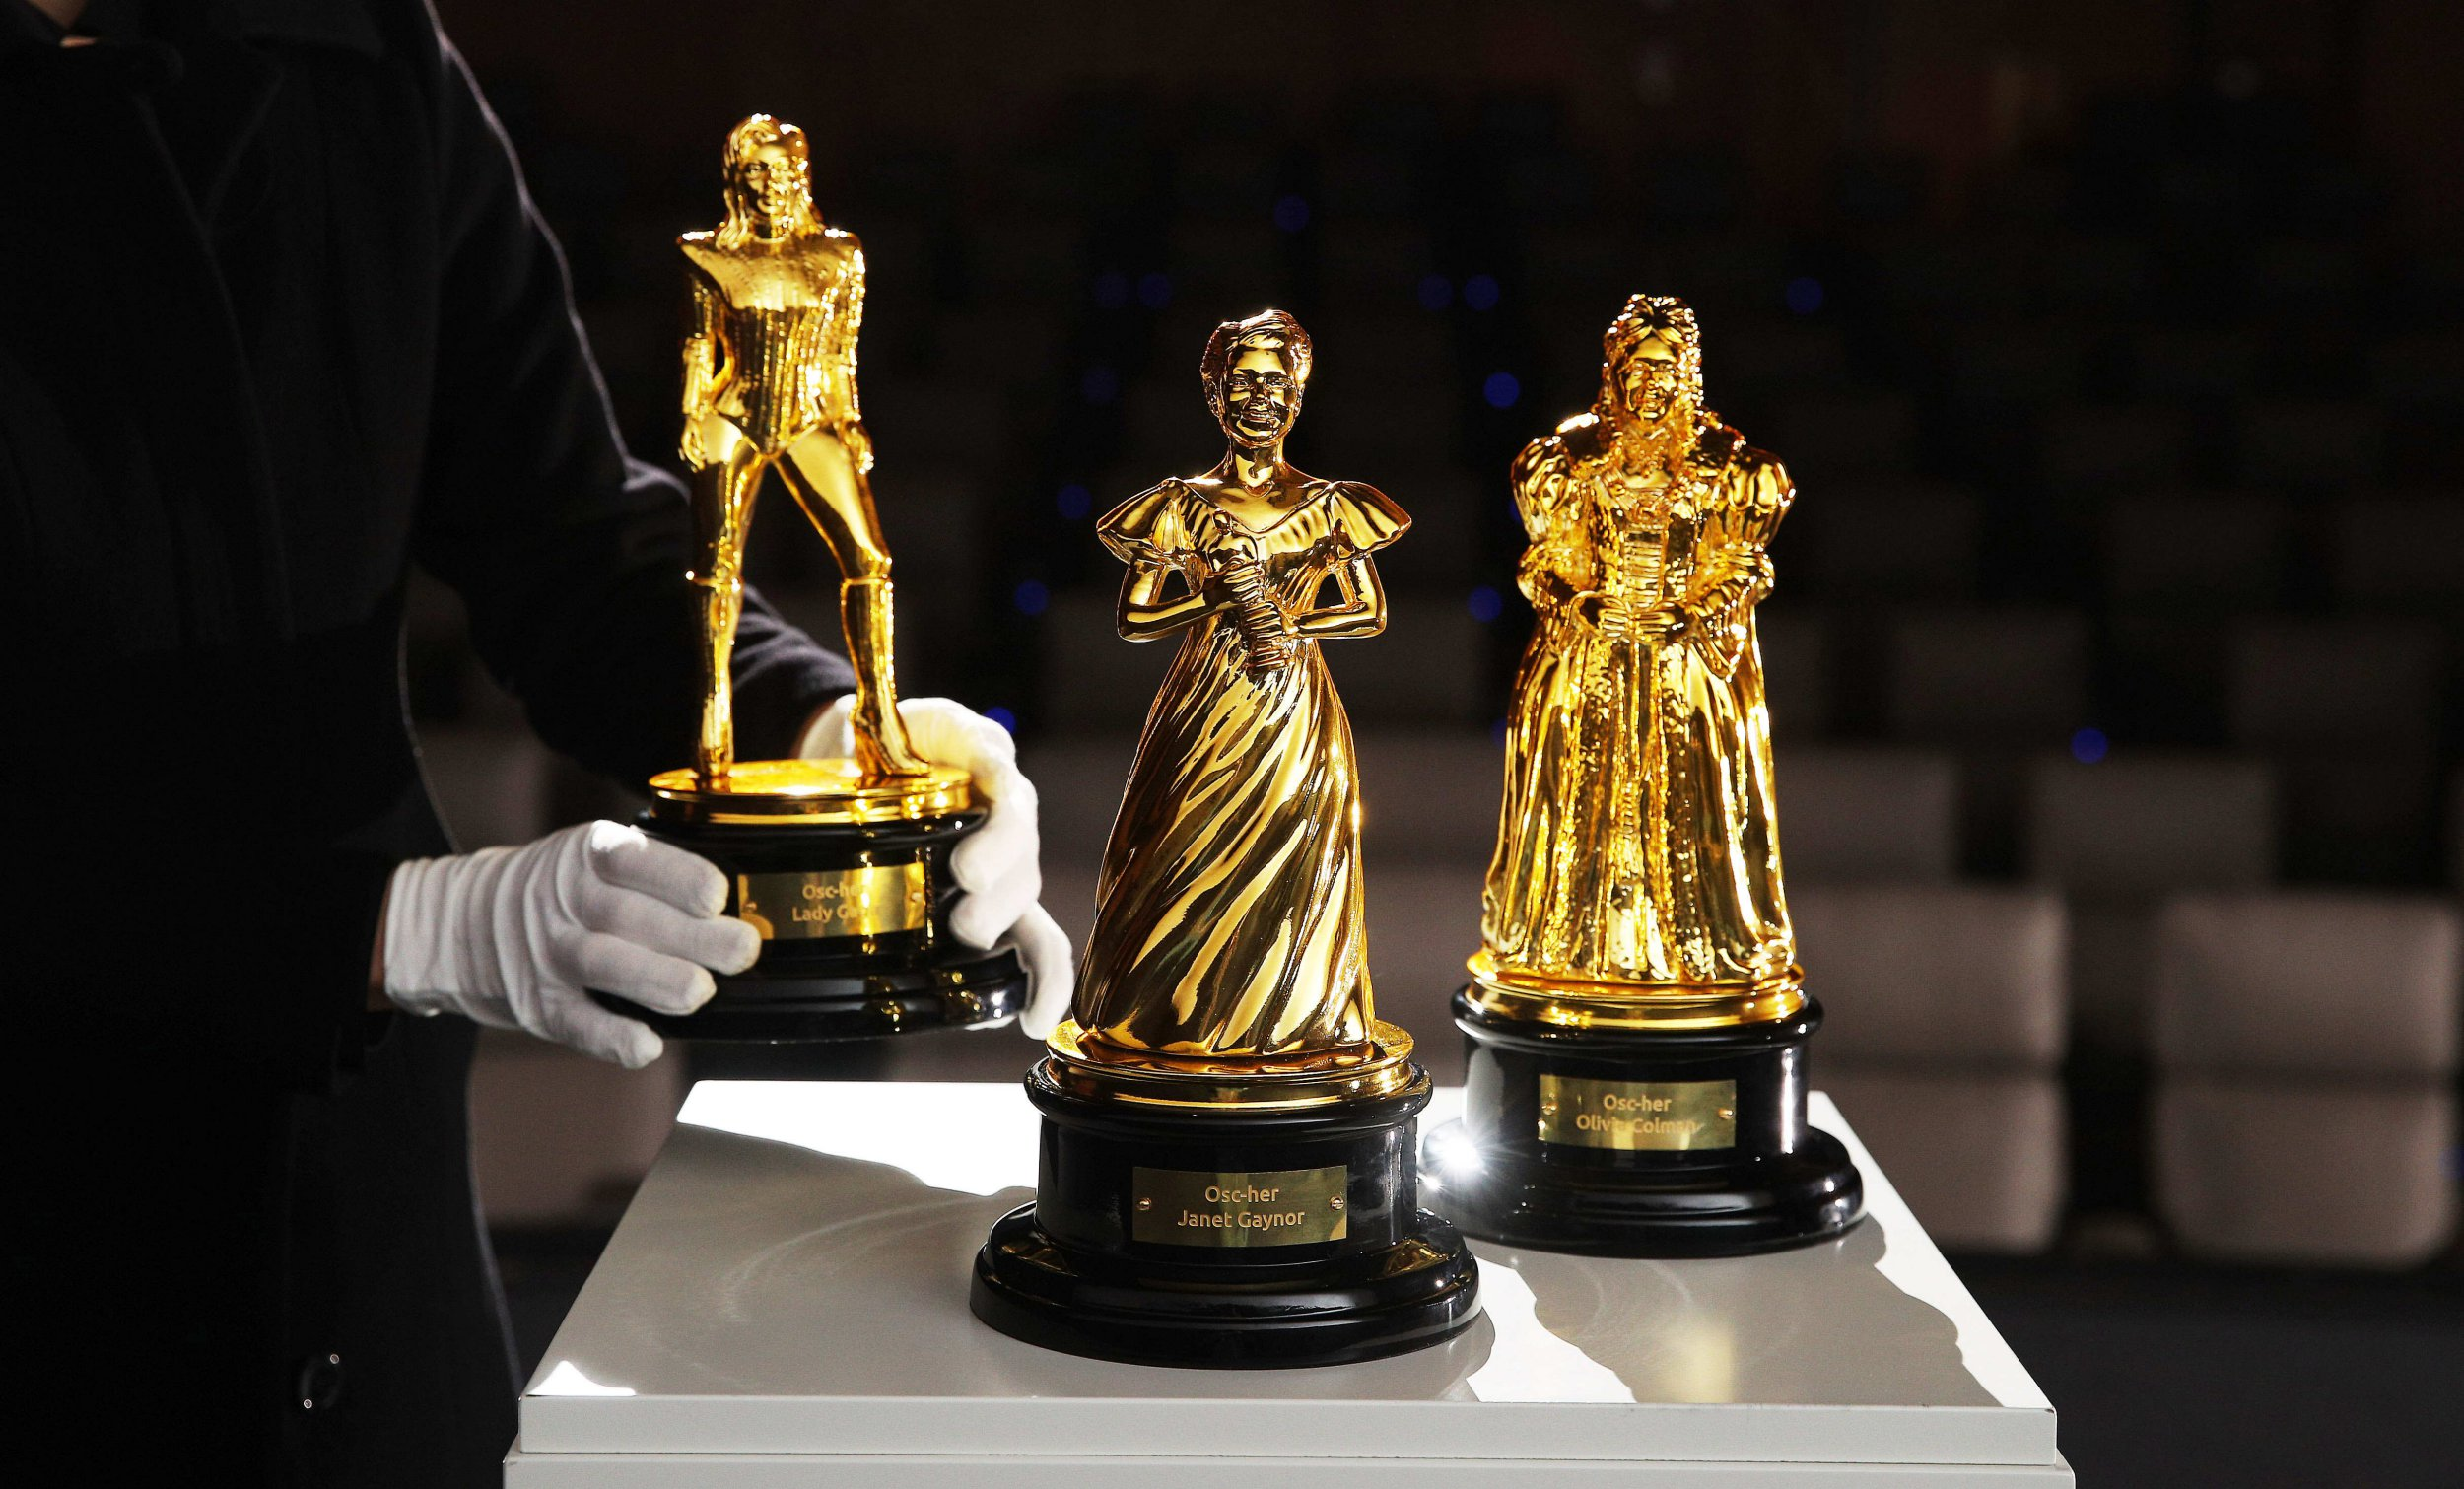 Oscars statuette gets modern reboot as Lady Gaga and Olivia Colman turn into legendary gold awards